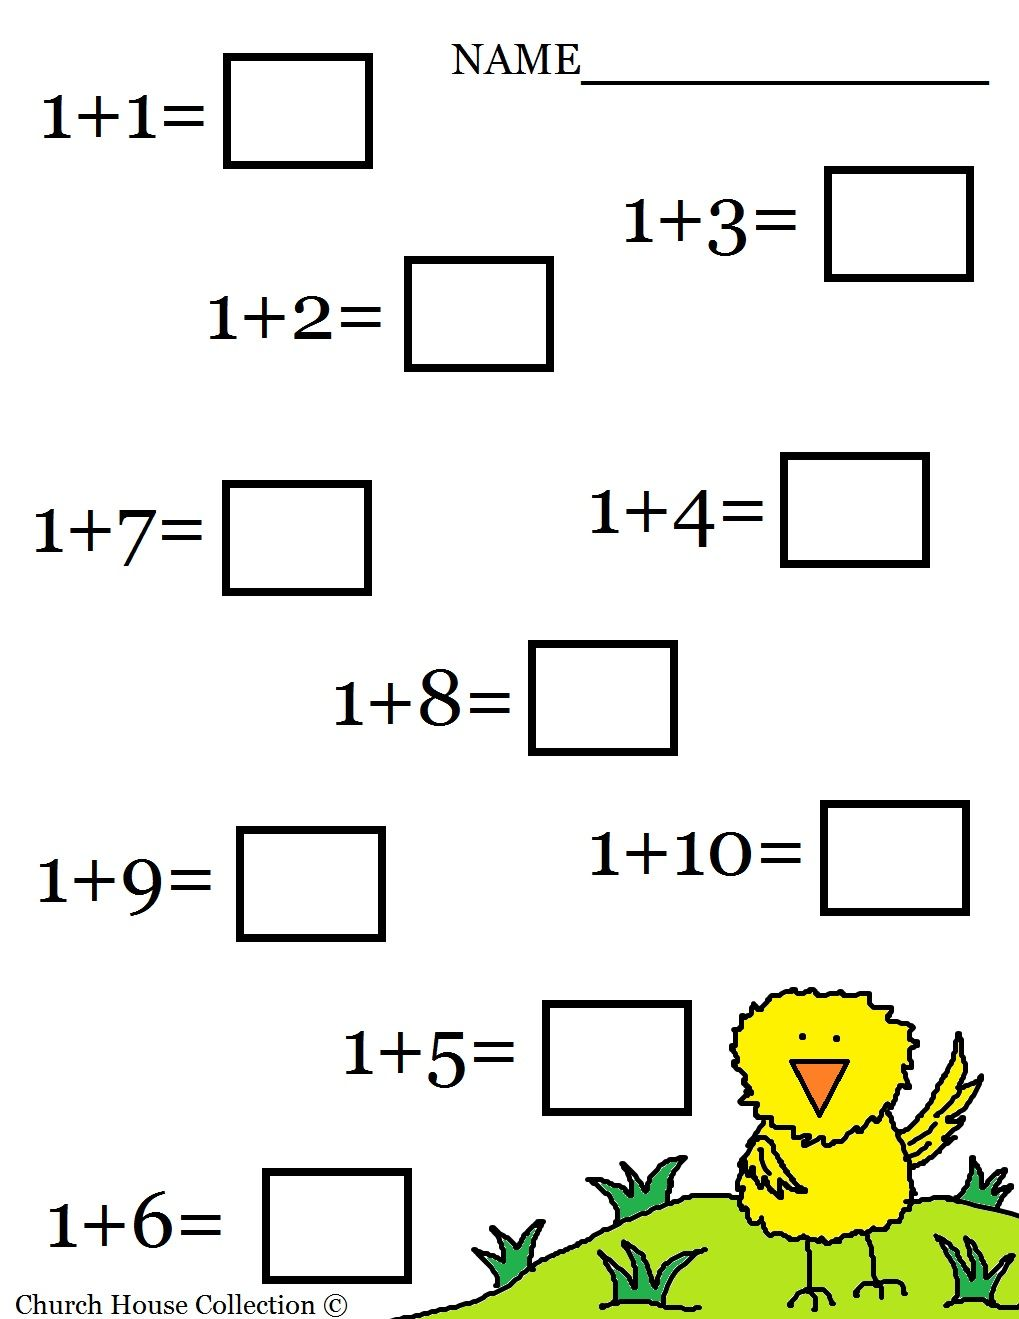 Proatmealus  Pleasing  Images About Worksheets  Math On Pinterest  Math Sheets  With Remarkable  Images About Worksheets  Math On Pinterest  Math Sheets Math Worksheets For Kindergarten And Simple Addition With Astonishing Rights And Responsibilities Worksheets Also Multiplication Worksheet For Grade  In Addition Irs Capital Gains Tax Worksheet And Esol Level  Worksheets As Well As Parts Of Book Worksheet Additionally Free Worksheets On Conjunctions From Pinterestcom With Proatmealus  Remarkable  Images About Worksheets  Math On Pinterest  Math Sheets  With Astonishing  Images About Worksheets  Math On Pinterest  Math Sheets Math Worksheets For Kindergarten And Simple Addition And Pleasing Rights And Responsibilities Worksheets Also Multiplication Worksheet For Grade  In Addition Irs Capital Gains Tax Worksheet From Pinterestcom